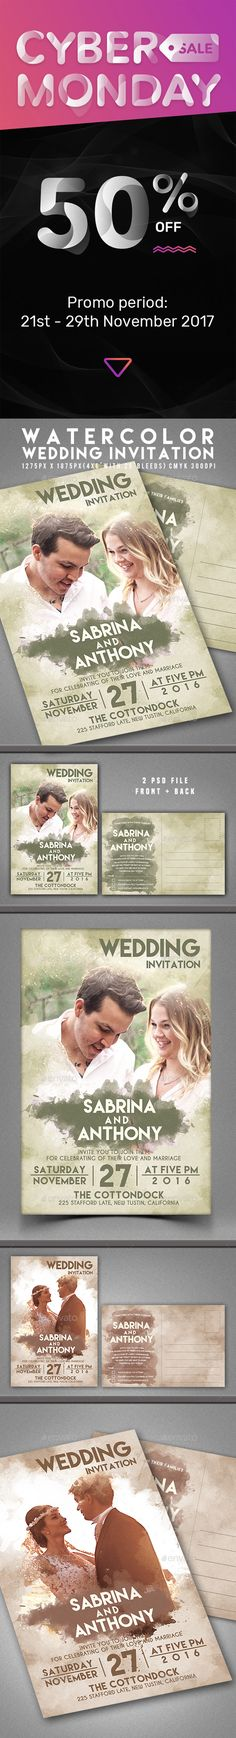 Wedding Invitation Template PSD - Available at 50% off during Cyber Monday! Promo period: 21st - 29th November 2017